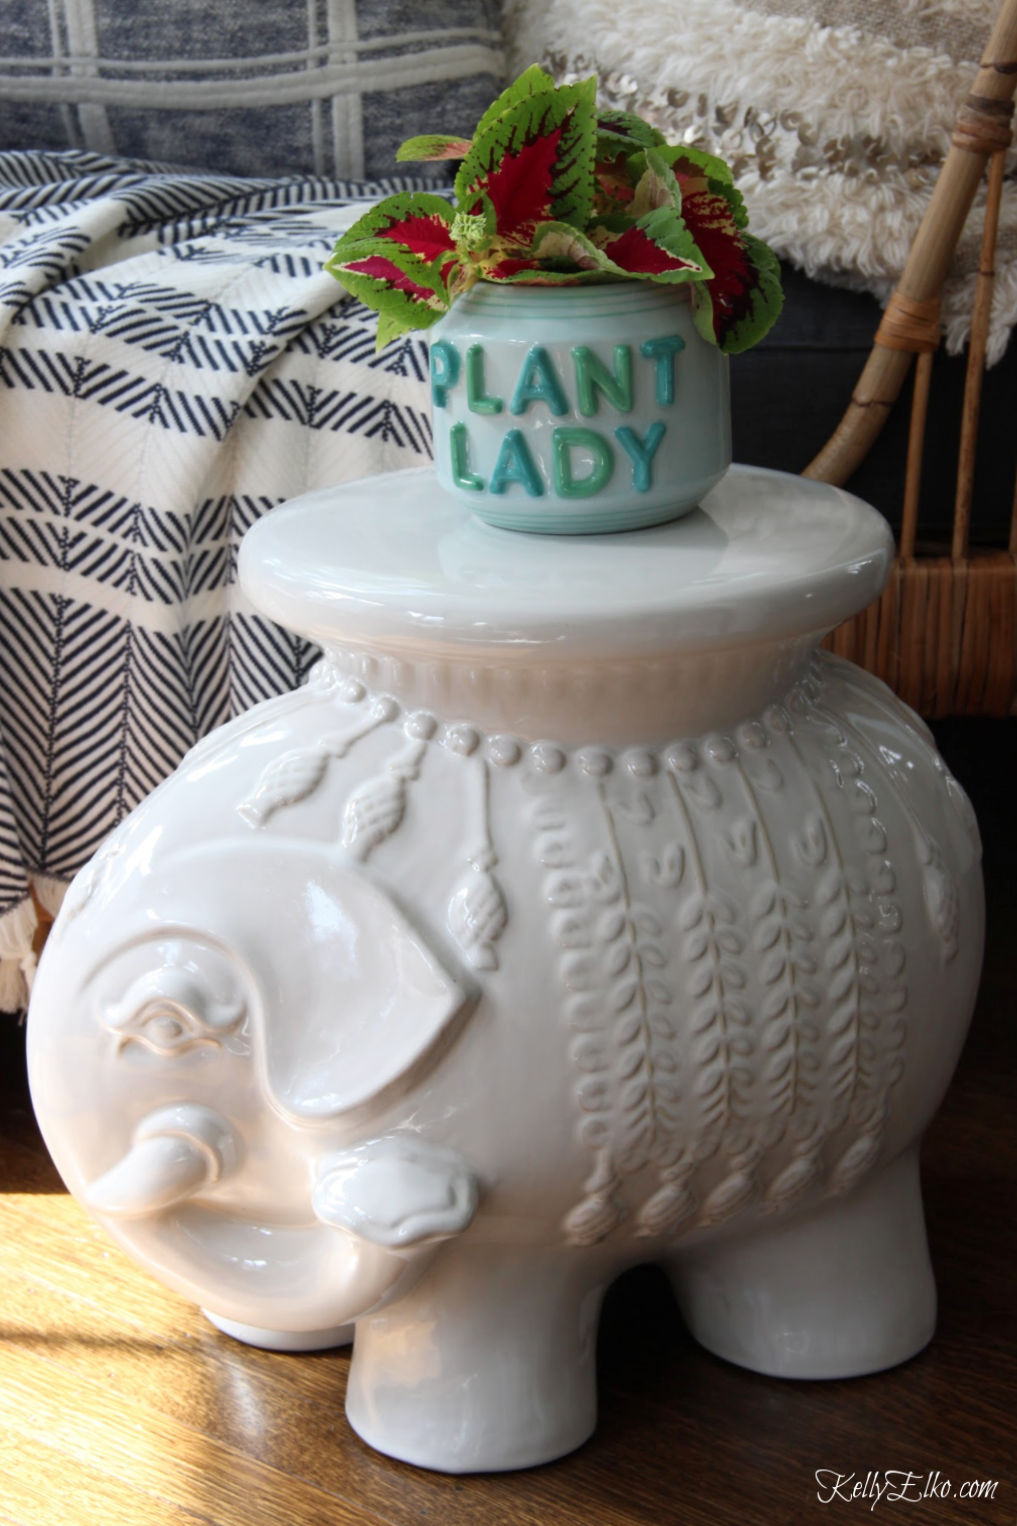 I love this ceramic elephant garden stool kellyelko.com #plantlady #elephantdecor #bohodecor #serenaandlily #homedecor